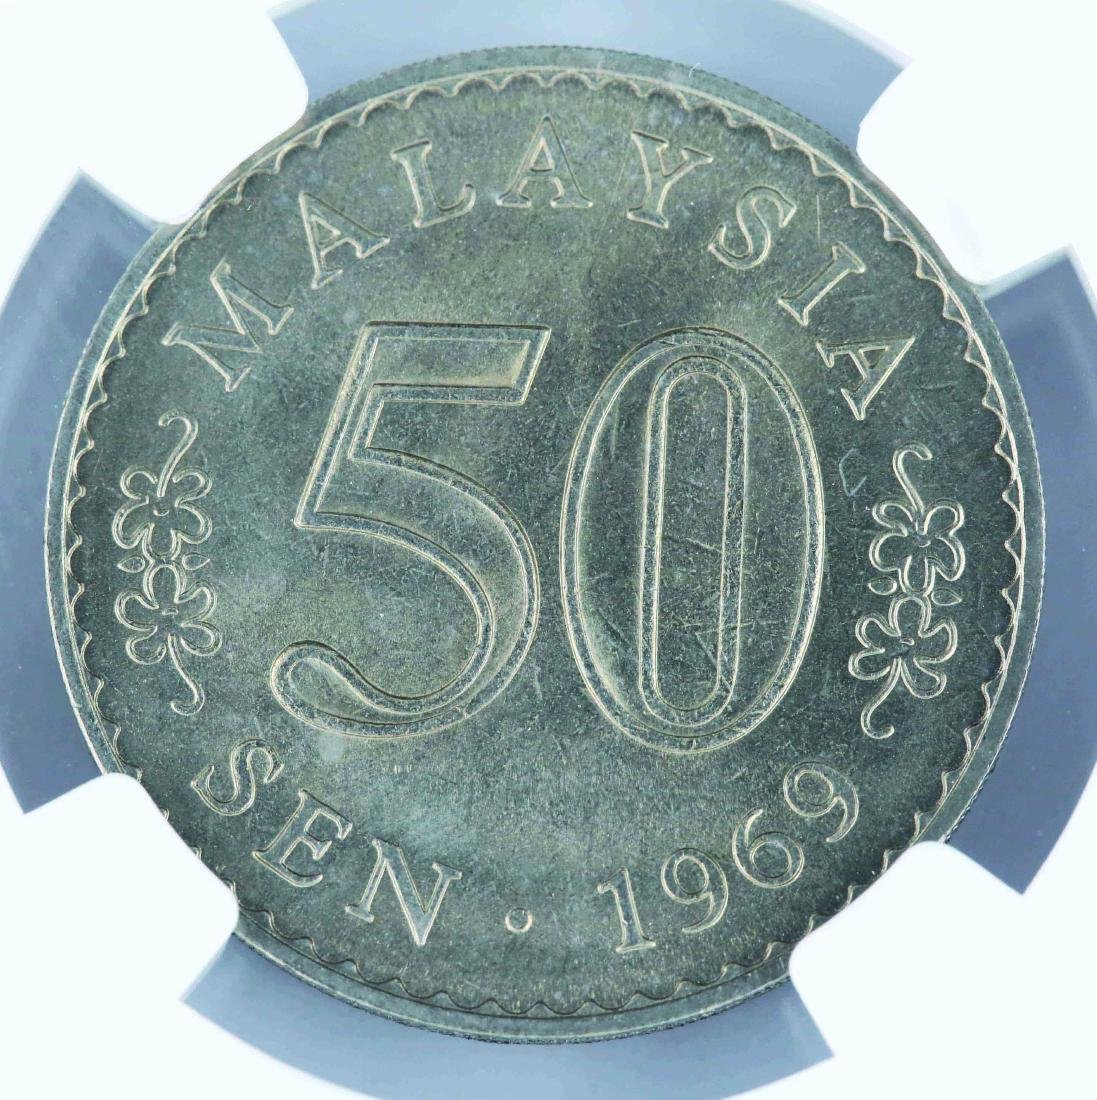 1969 Malaysia 50 Cents, NGC MS 64, Security Edge